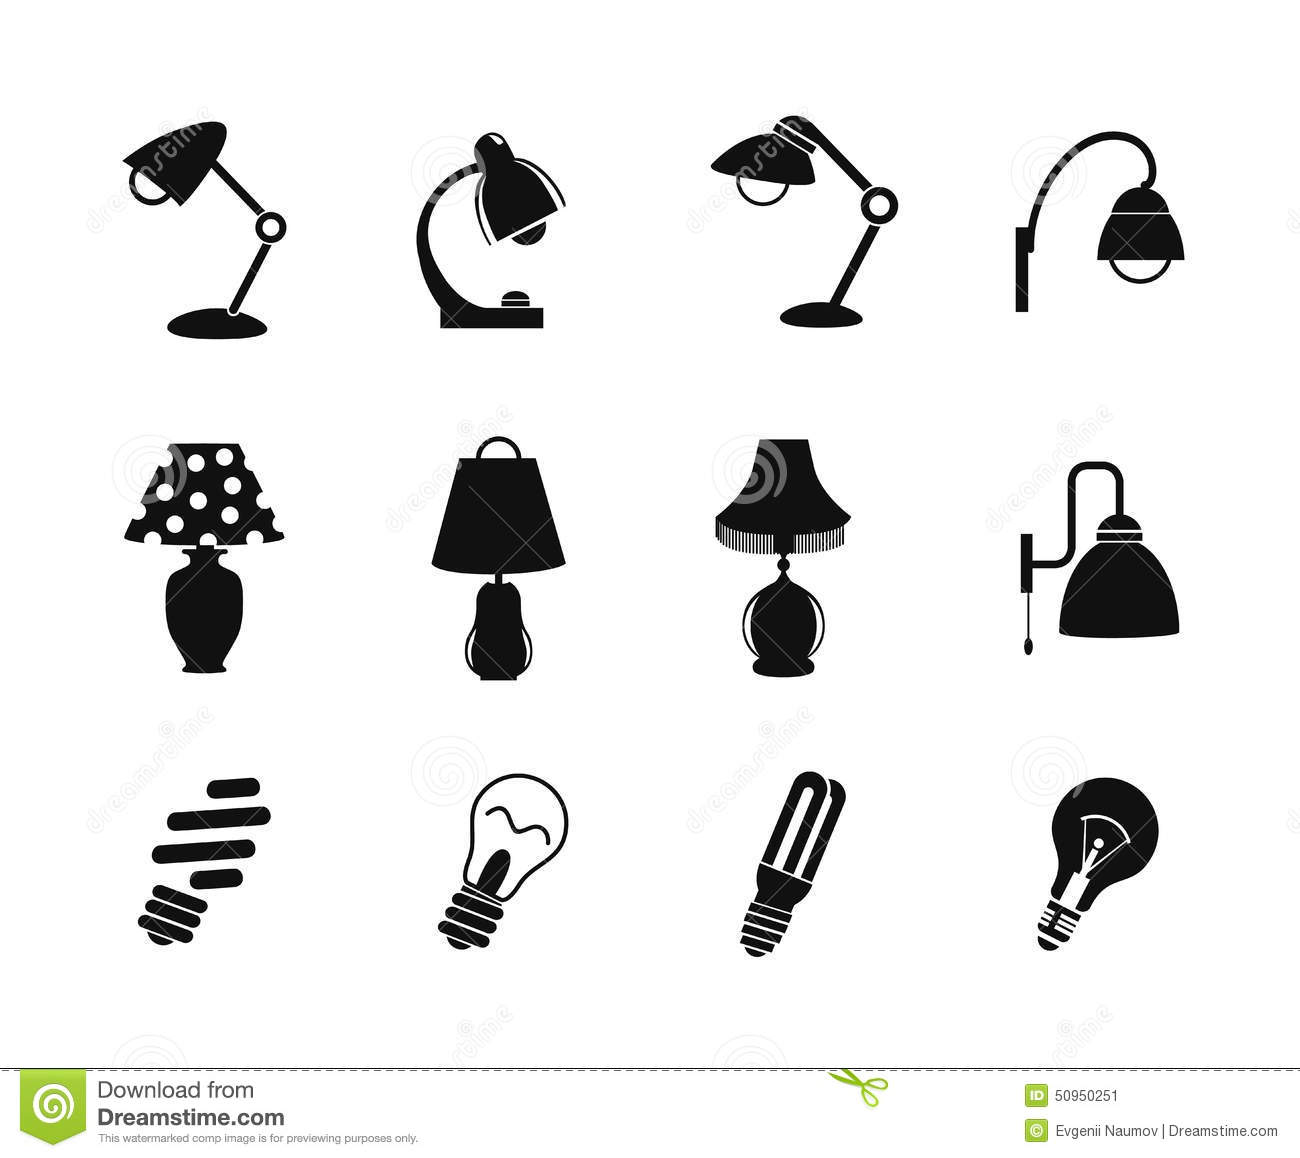 Simple table free other icons - Royalty Free Vector